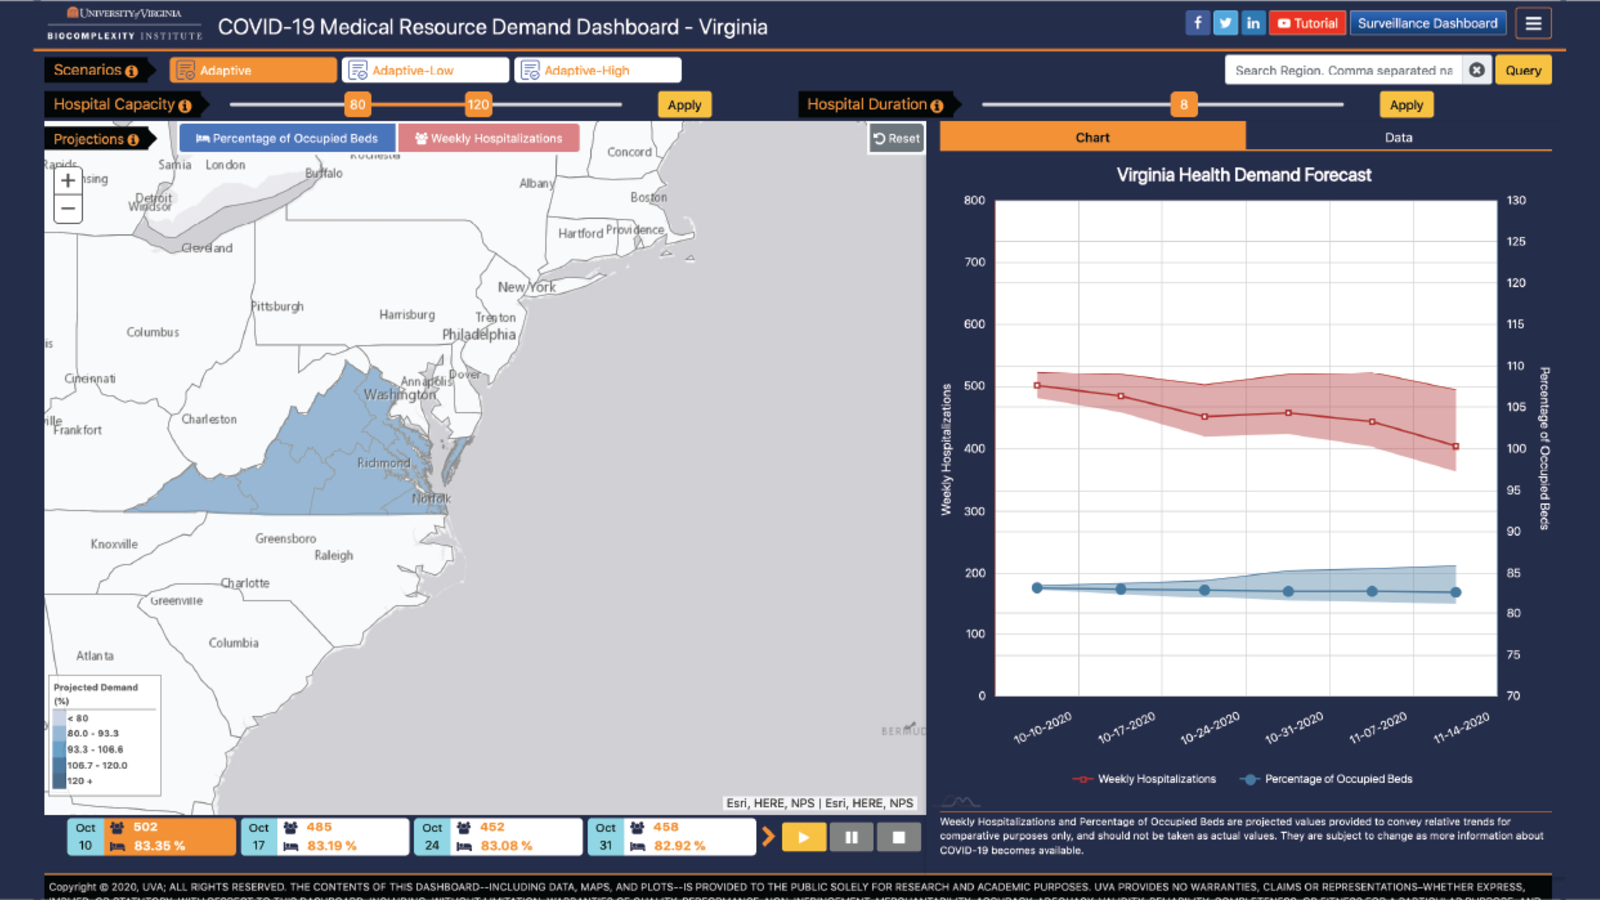 COVID-19 Medical Resource Demand Dashboard: Virginia